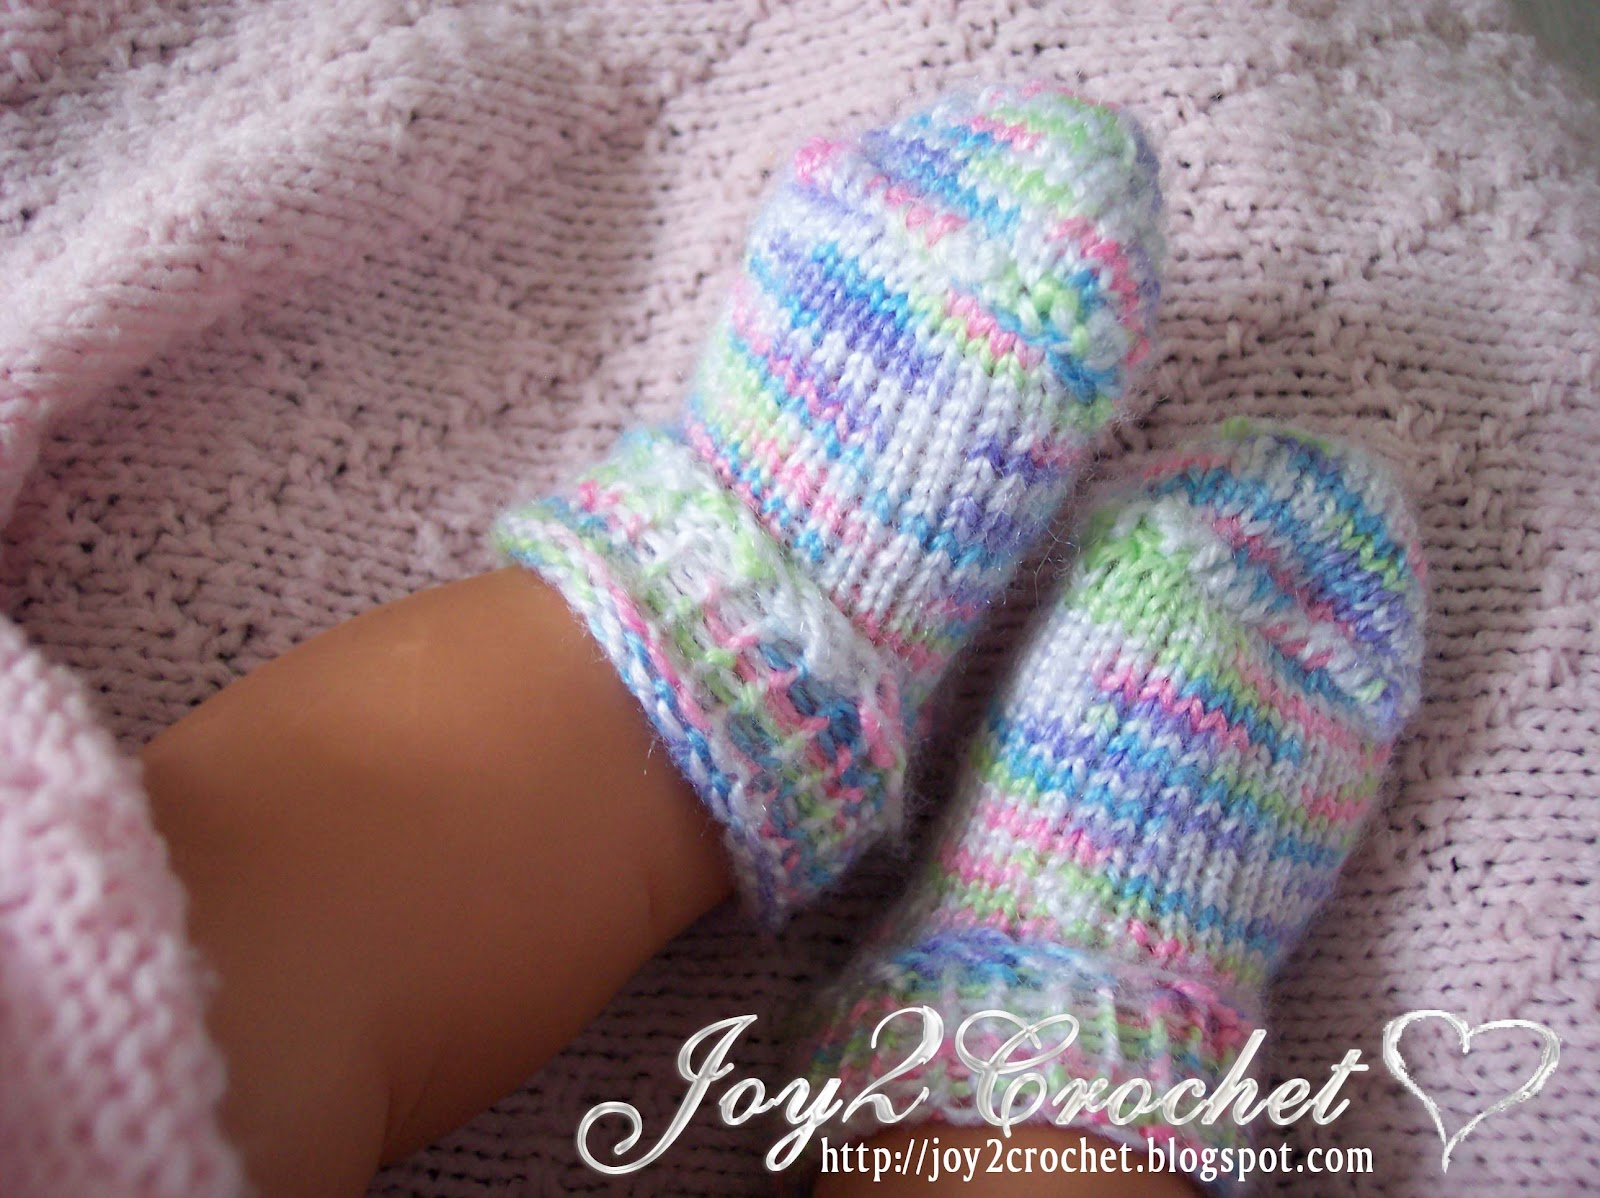 Joy 2 Crochet: KB Adjustable Sock Knitting Loom